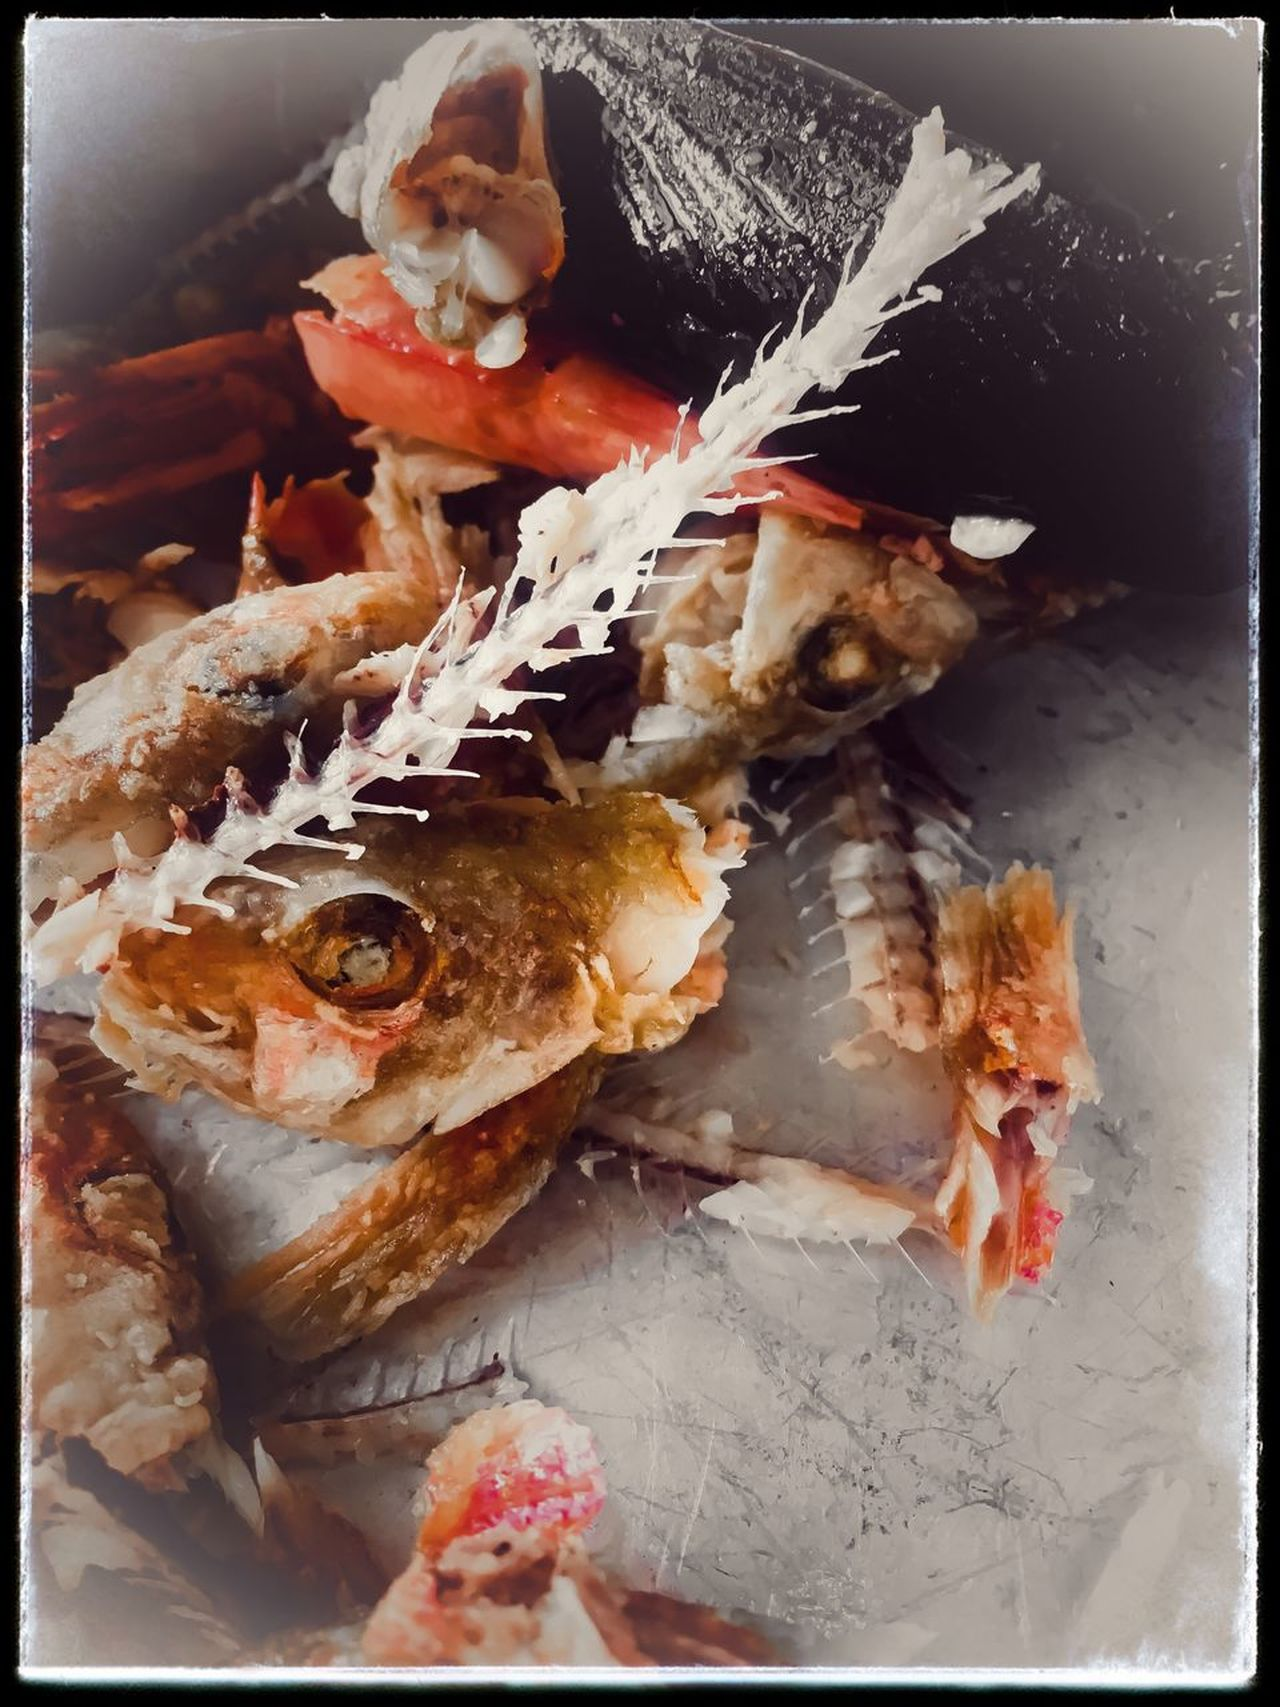 EyeEmNewHere Seafood Food And Drink Fish Food Fish Bones Meal Dinner Jaffa Fish Plate Discarded Carcass Fish Heads White Fish Eating Eyes Fish Eyes Garbage HEAD Indoors  No People Healthy Eating Close-up Ready-to-eat Day